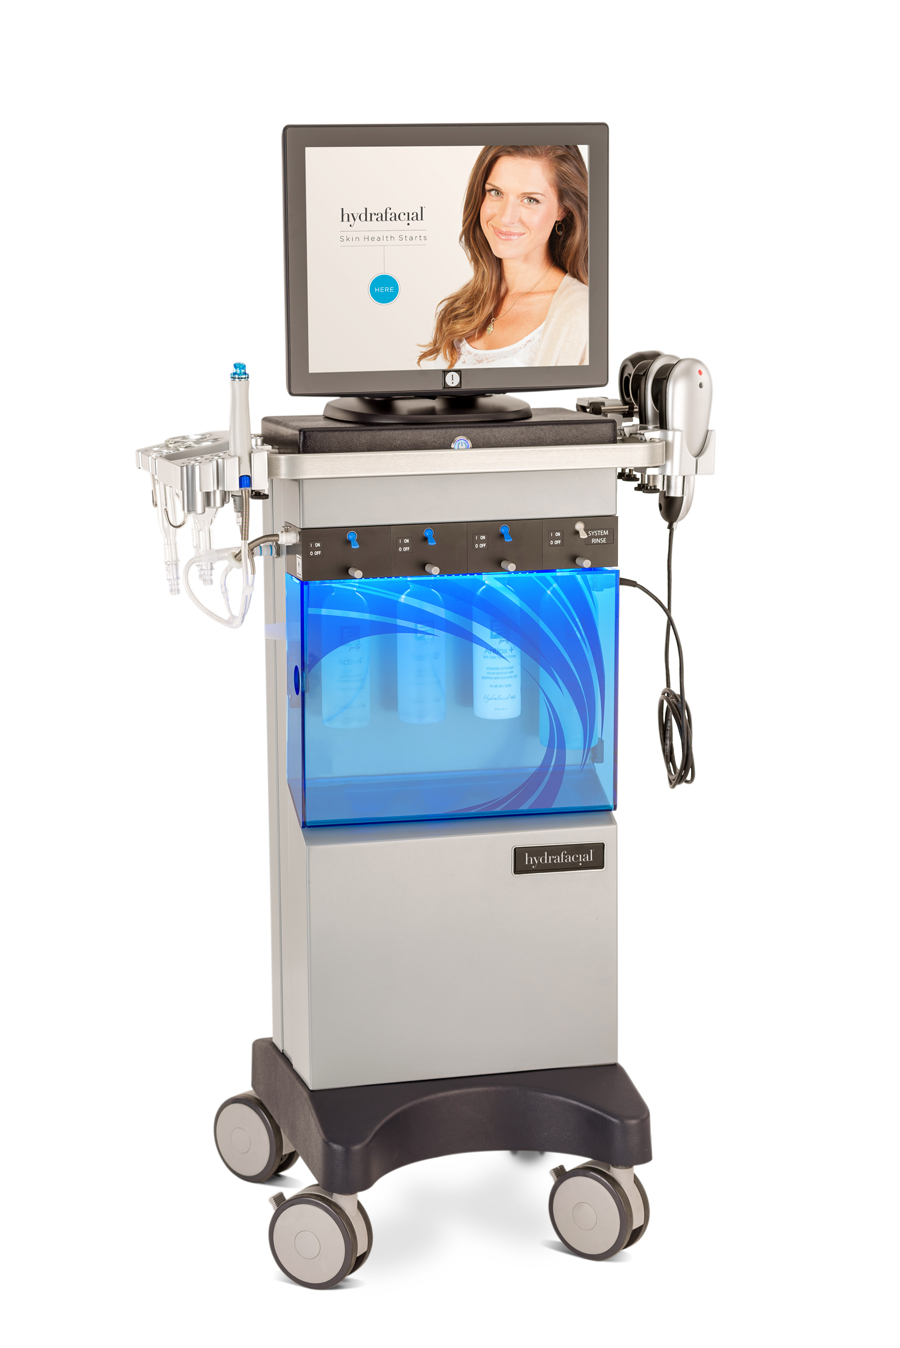 HydraFacial treat is the best skin care